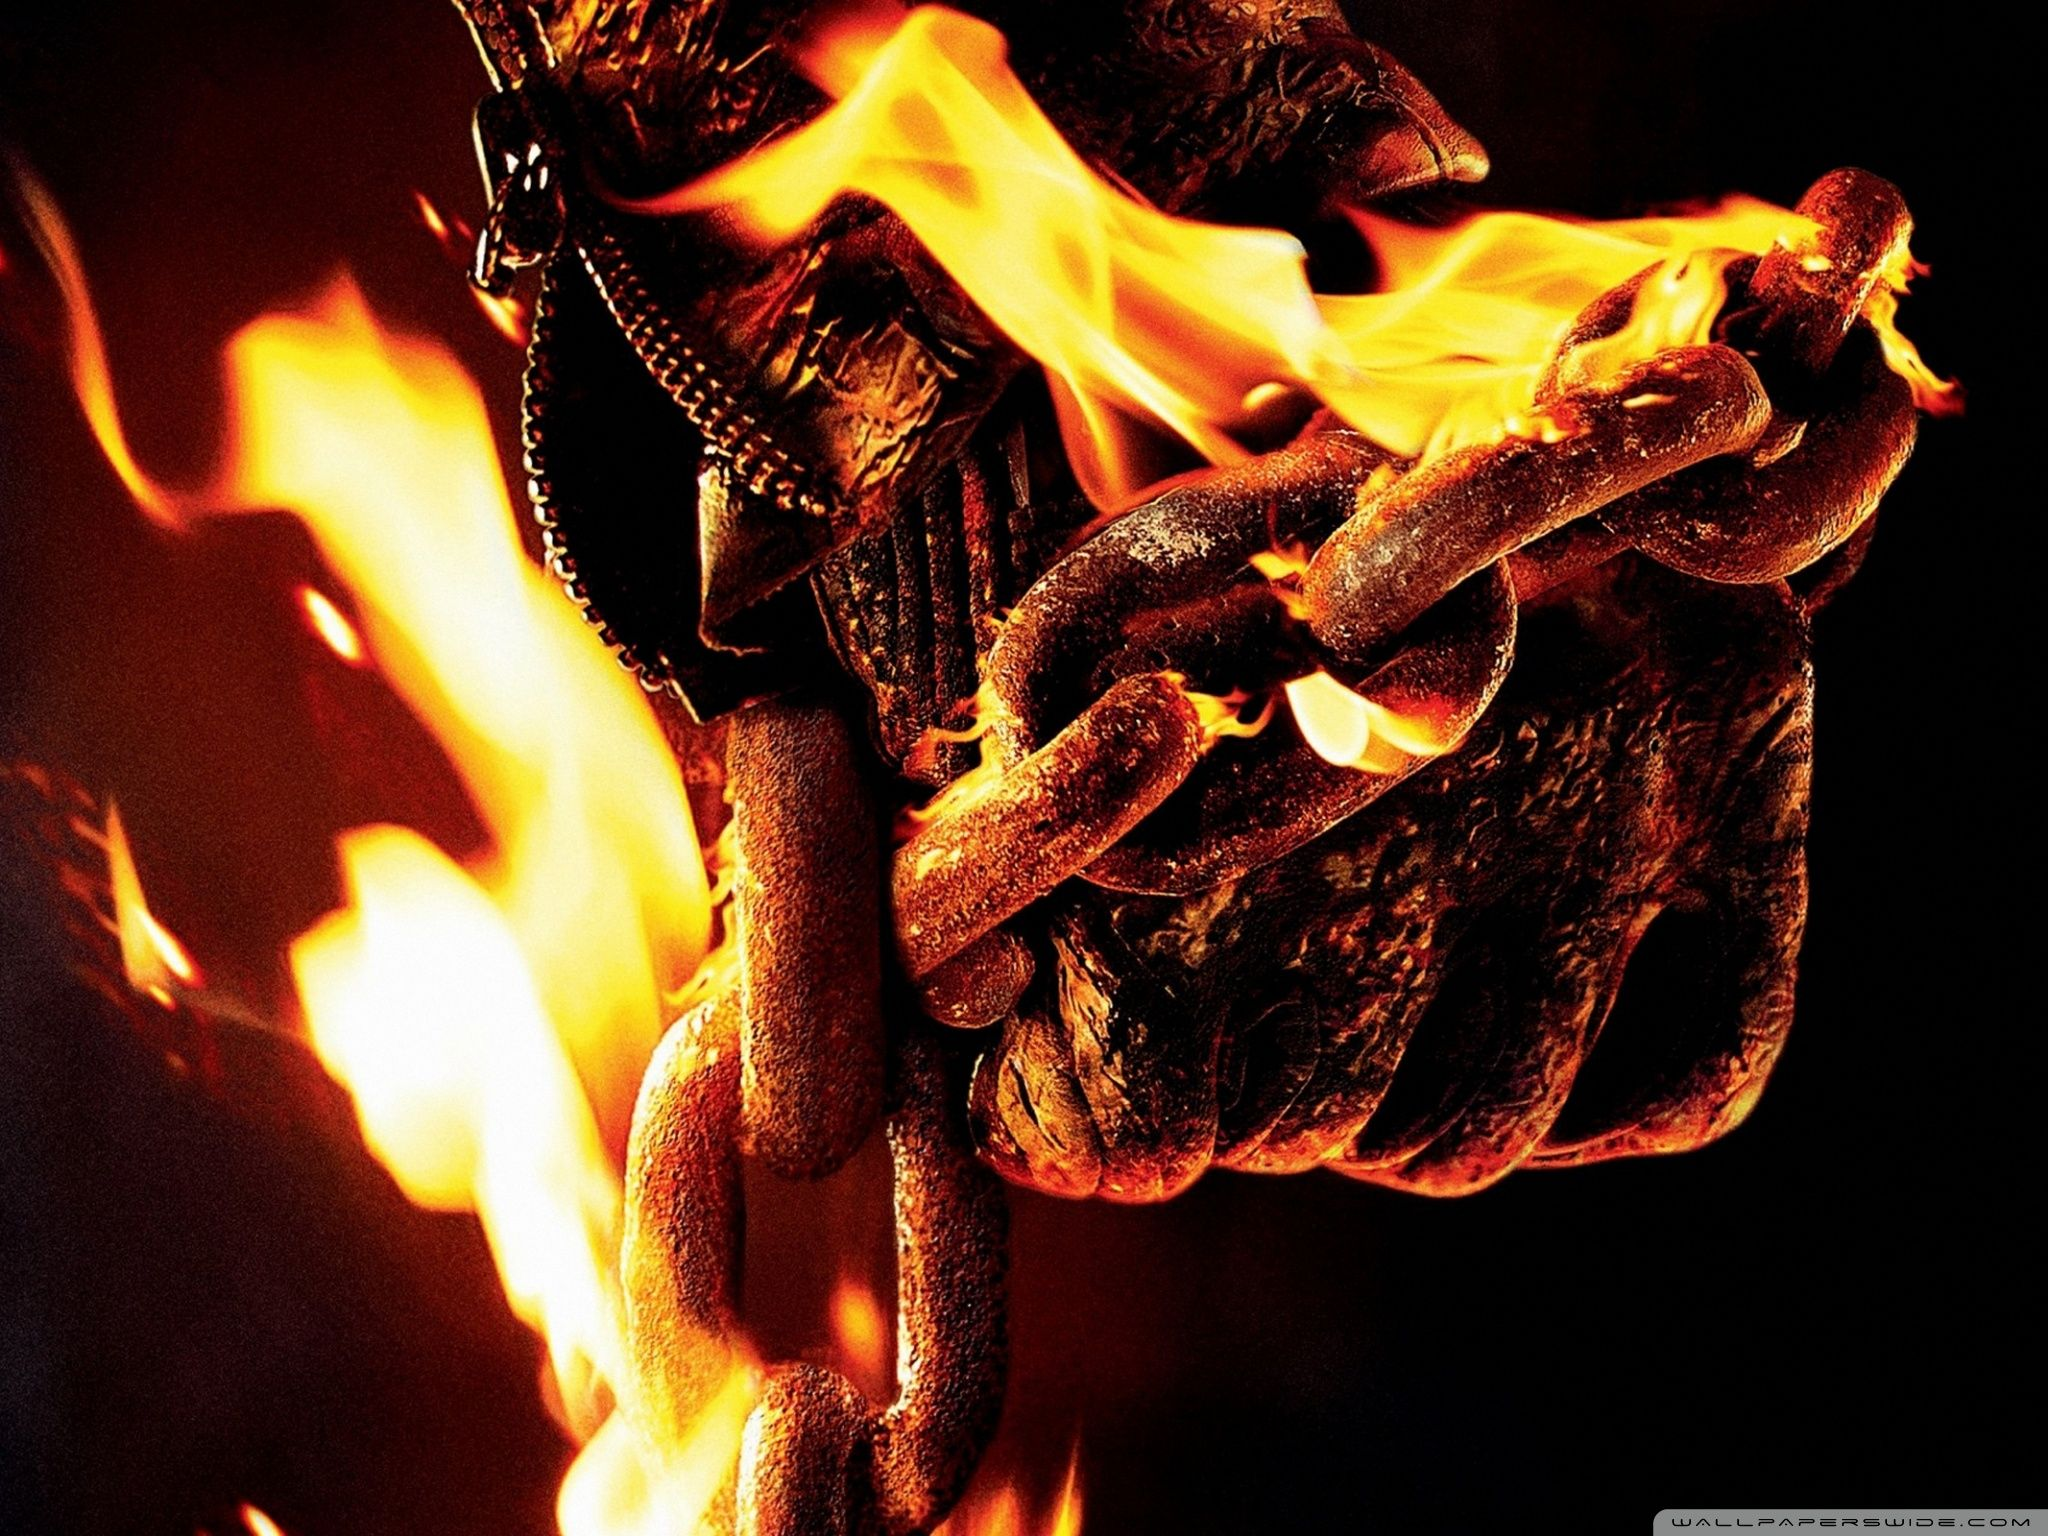 Top Wallpaper Horse Ghost Rider - 193253faf4b6112f527a8a8cc83de8d2  Perfect Image Reference_983283.jpg